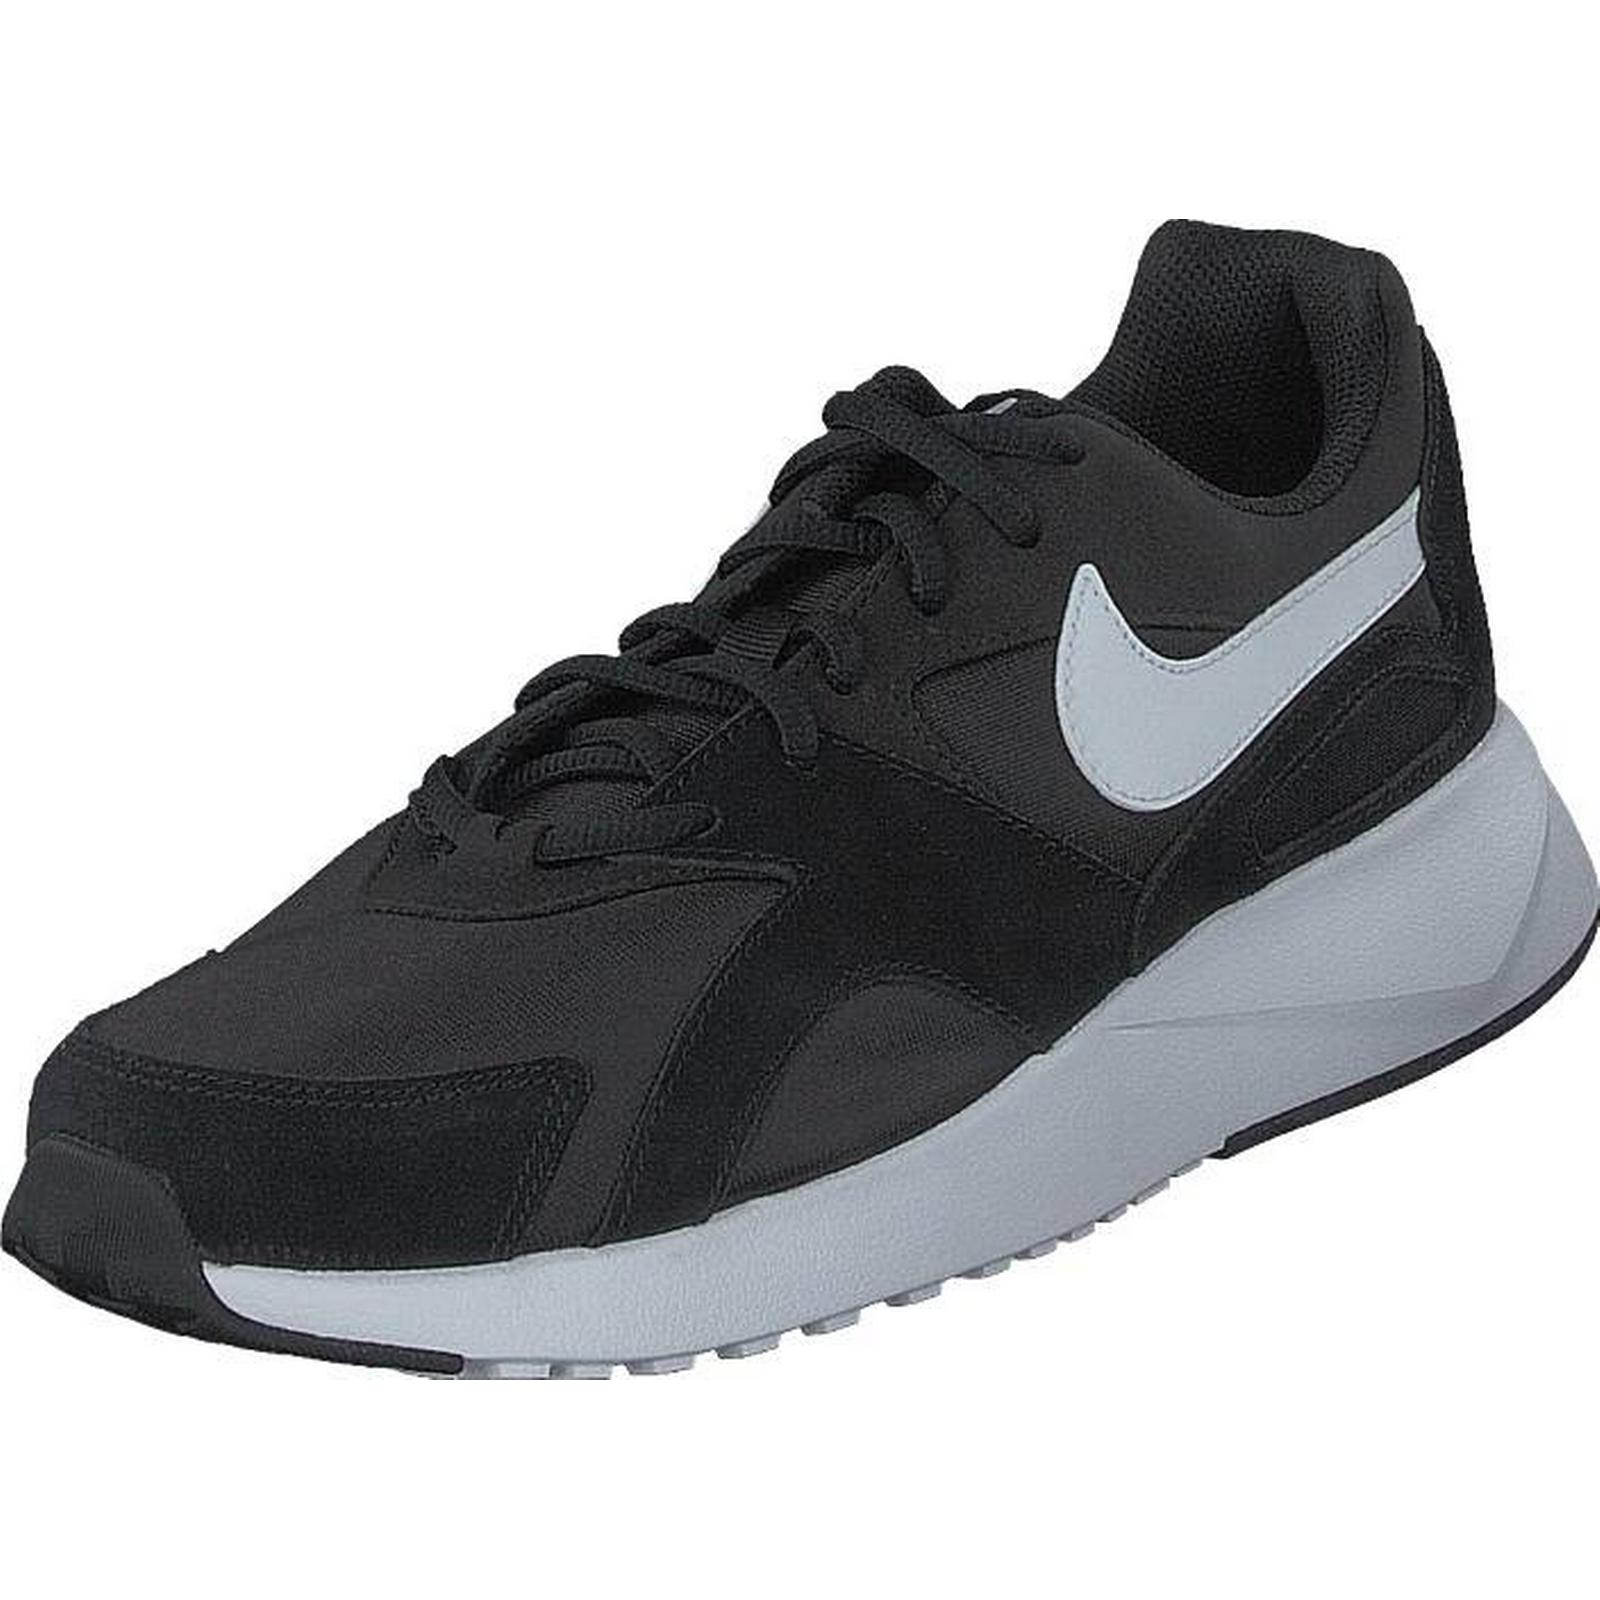 new styles 547ab 66591 Nike-Pantheos-Black-white-Shoes--Trainers---Sport-Shoes---Trainers--Black-- Male--42.jpg